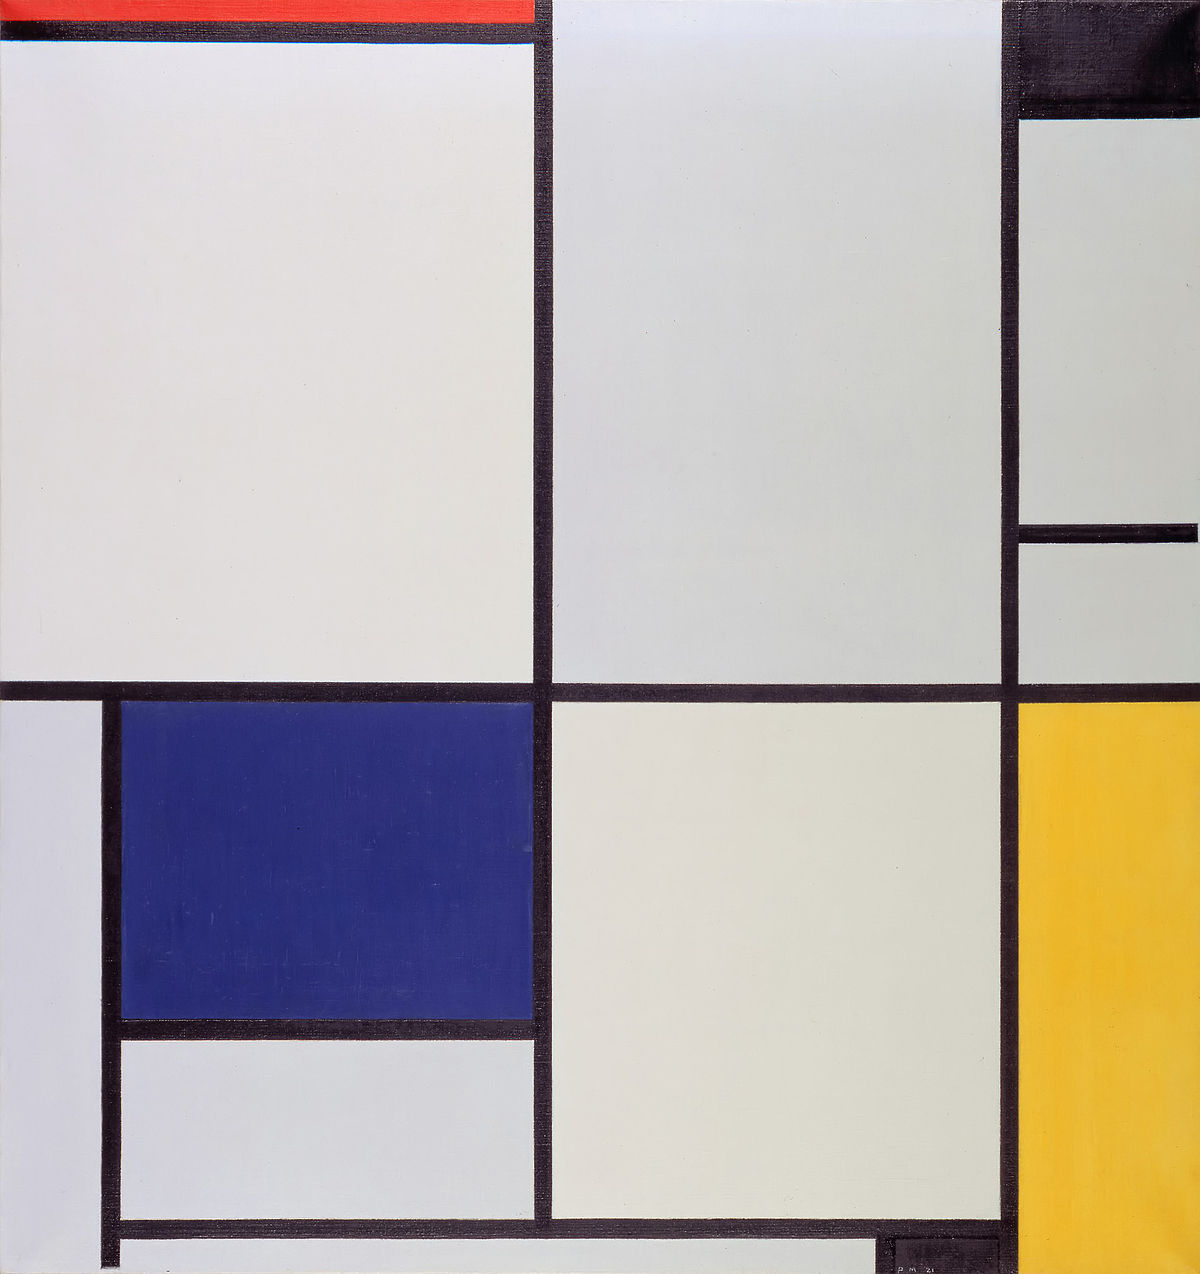 Piet Mondriaan abstract painting Tableau I, from 1921